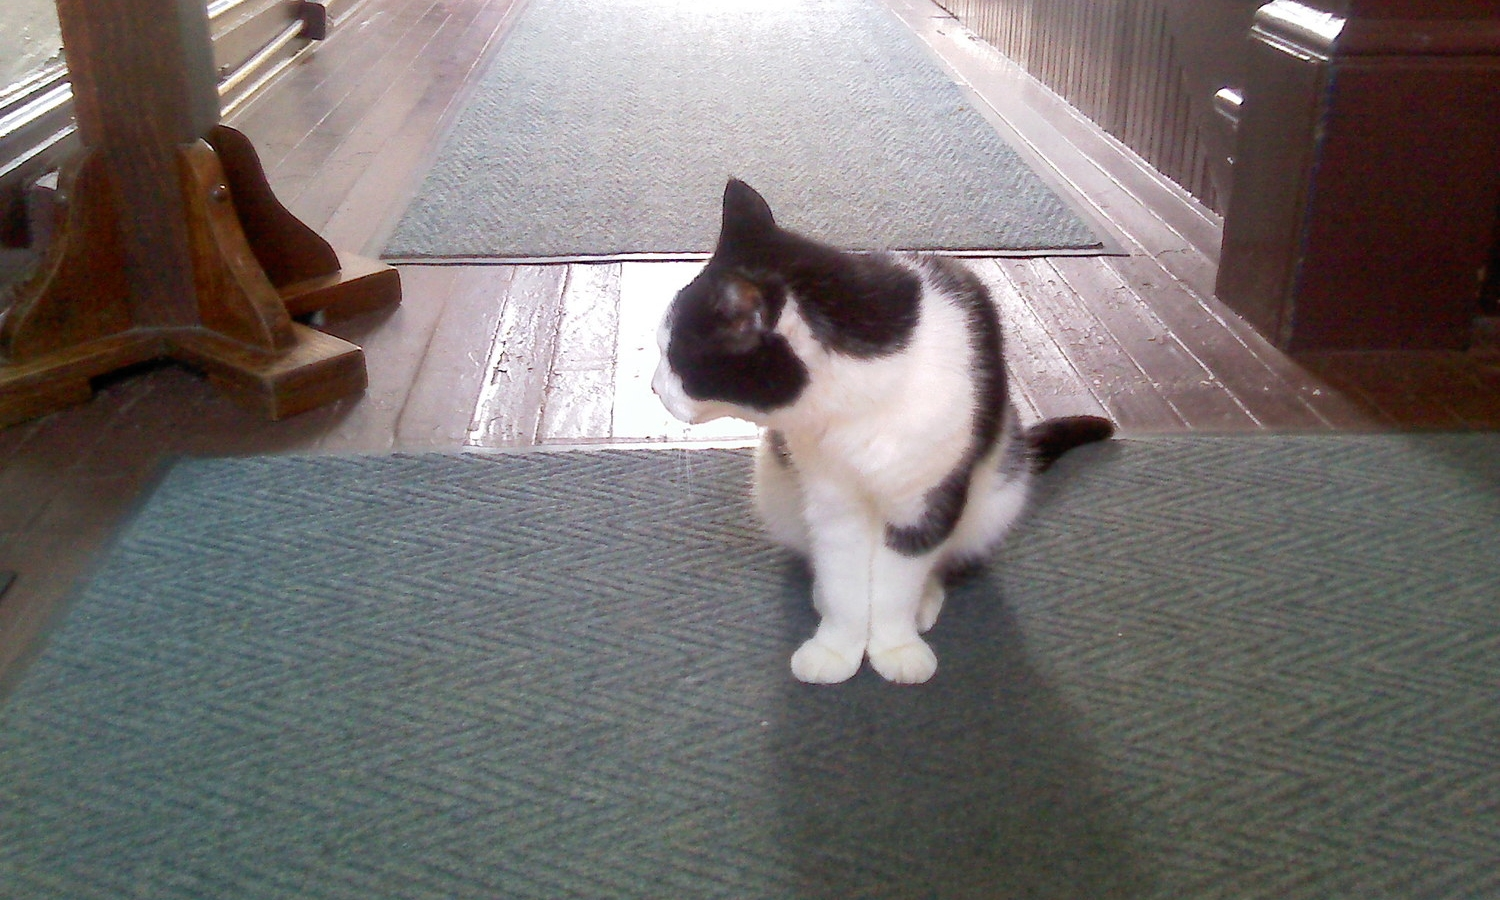 This is camera-shy Sugar, who greeted visitors to the Shirley Plantation gift shop.